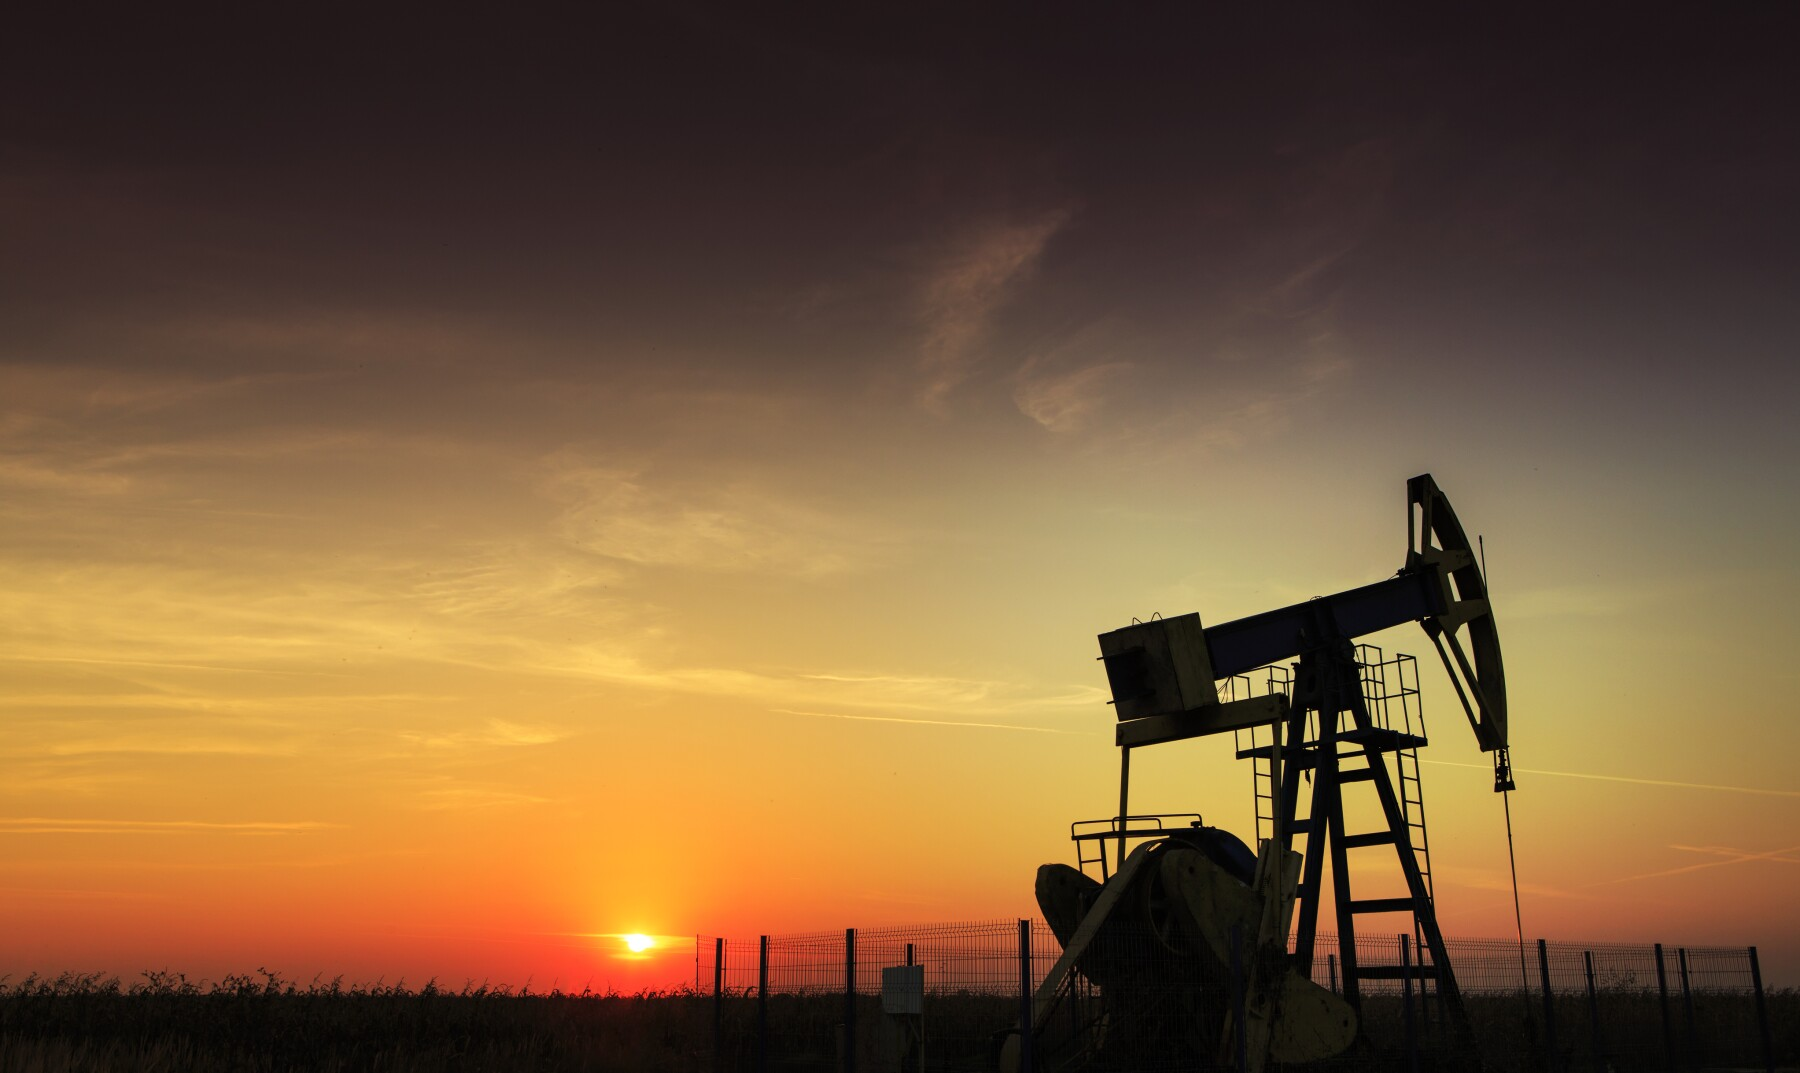 An oil and gas well operating during sunset